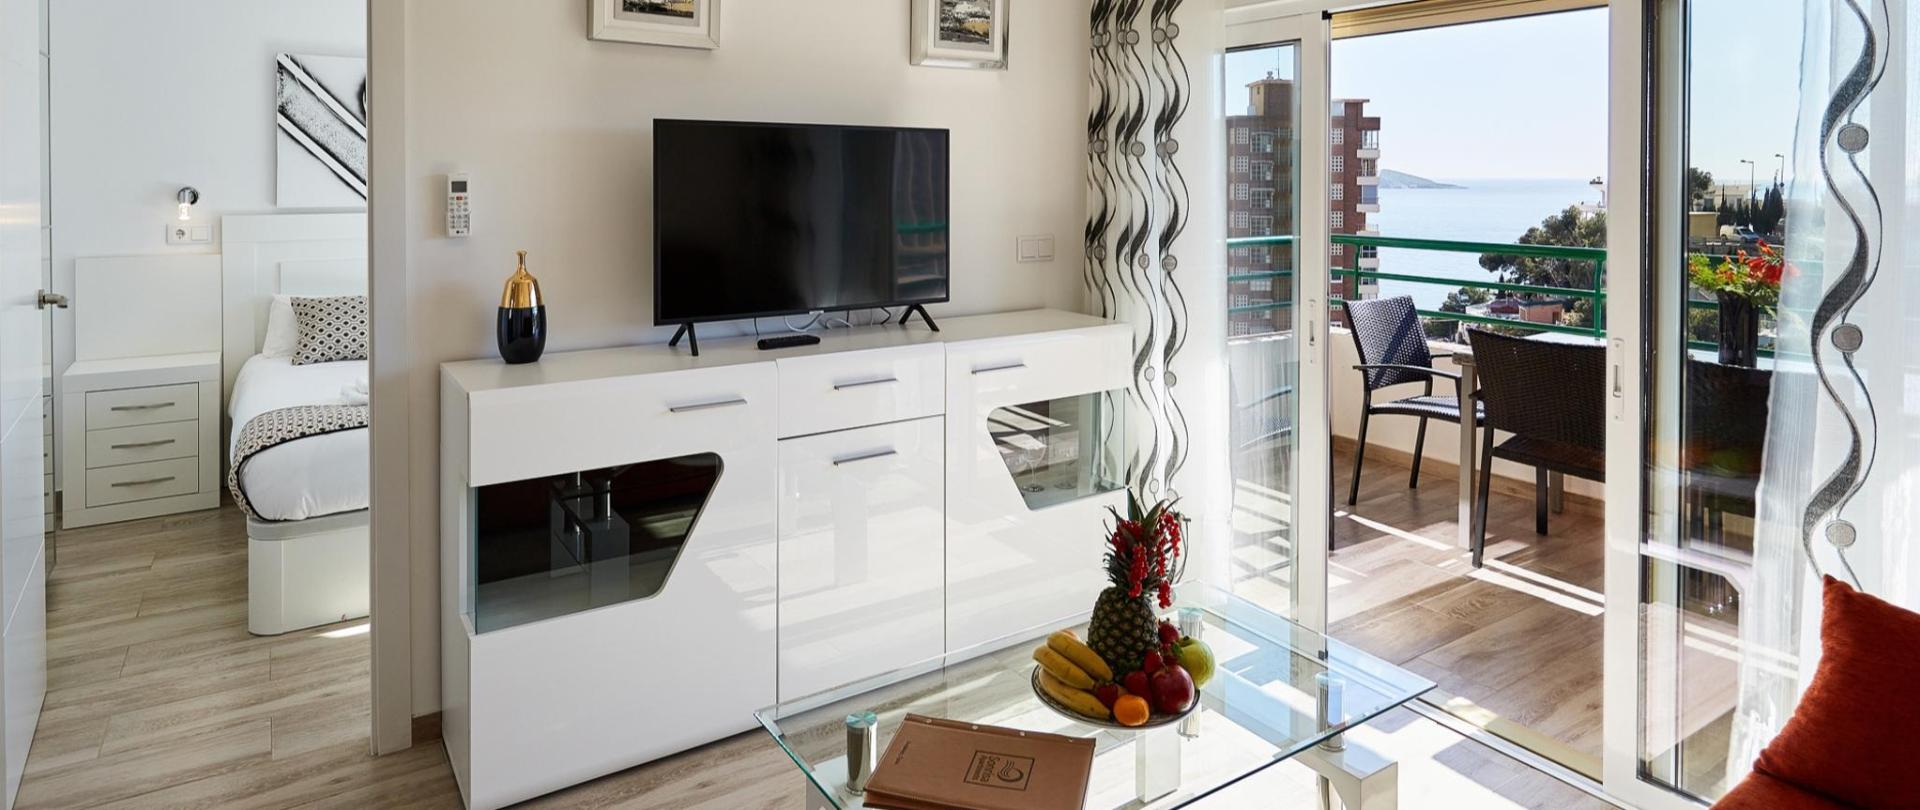 Sonrisa Apartments - Superior Apartments with Balcony and Sea View19.jpg